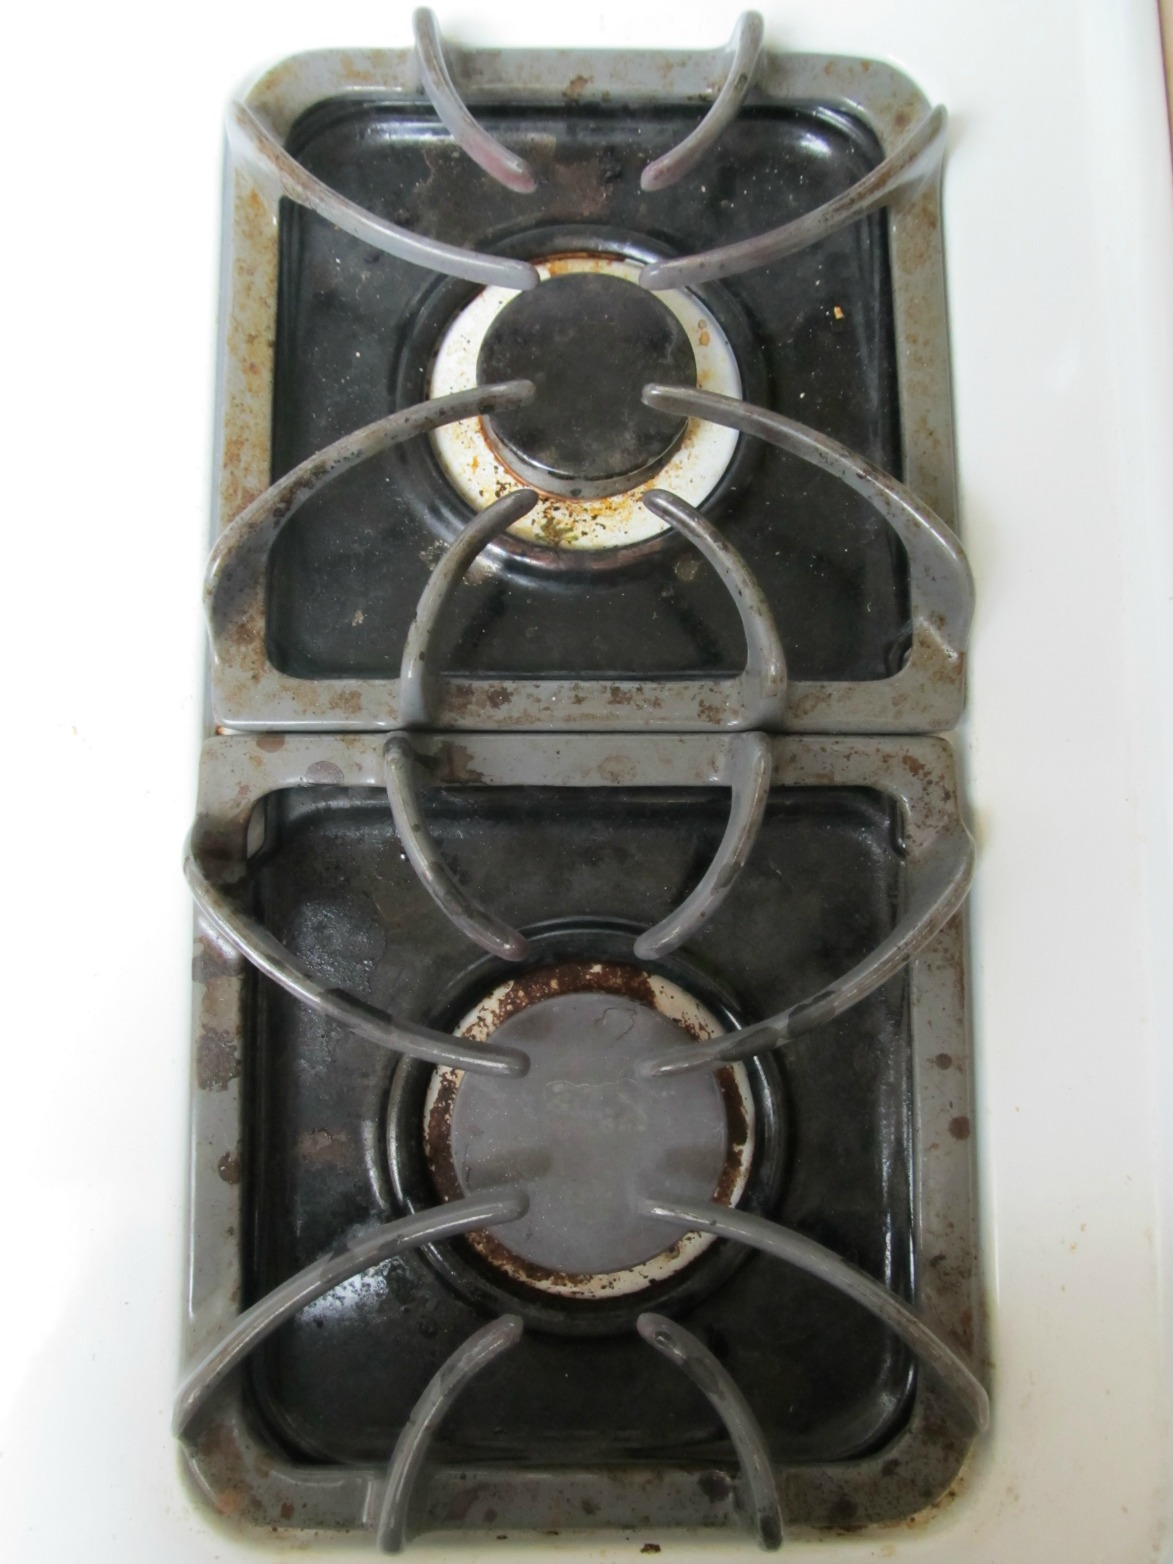 how to clean gas stove burners with ammonia